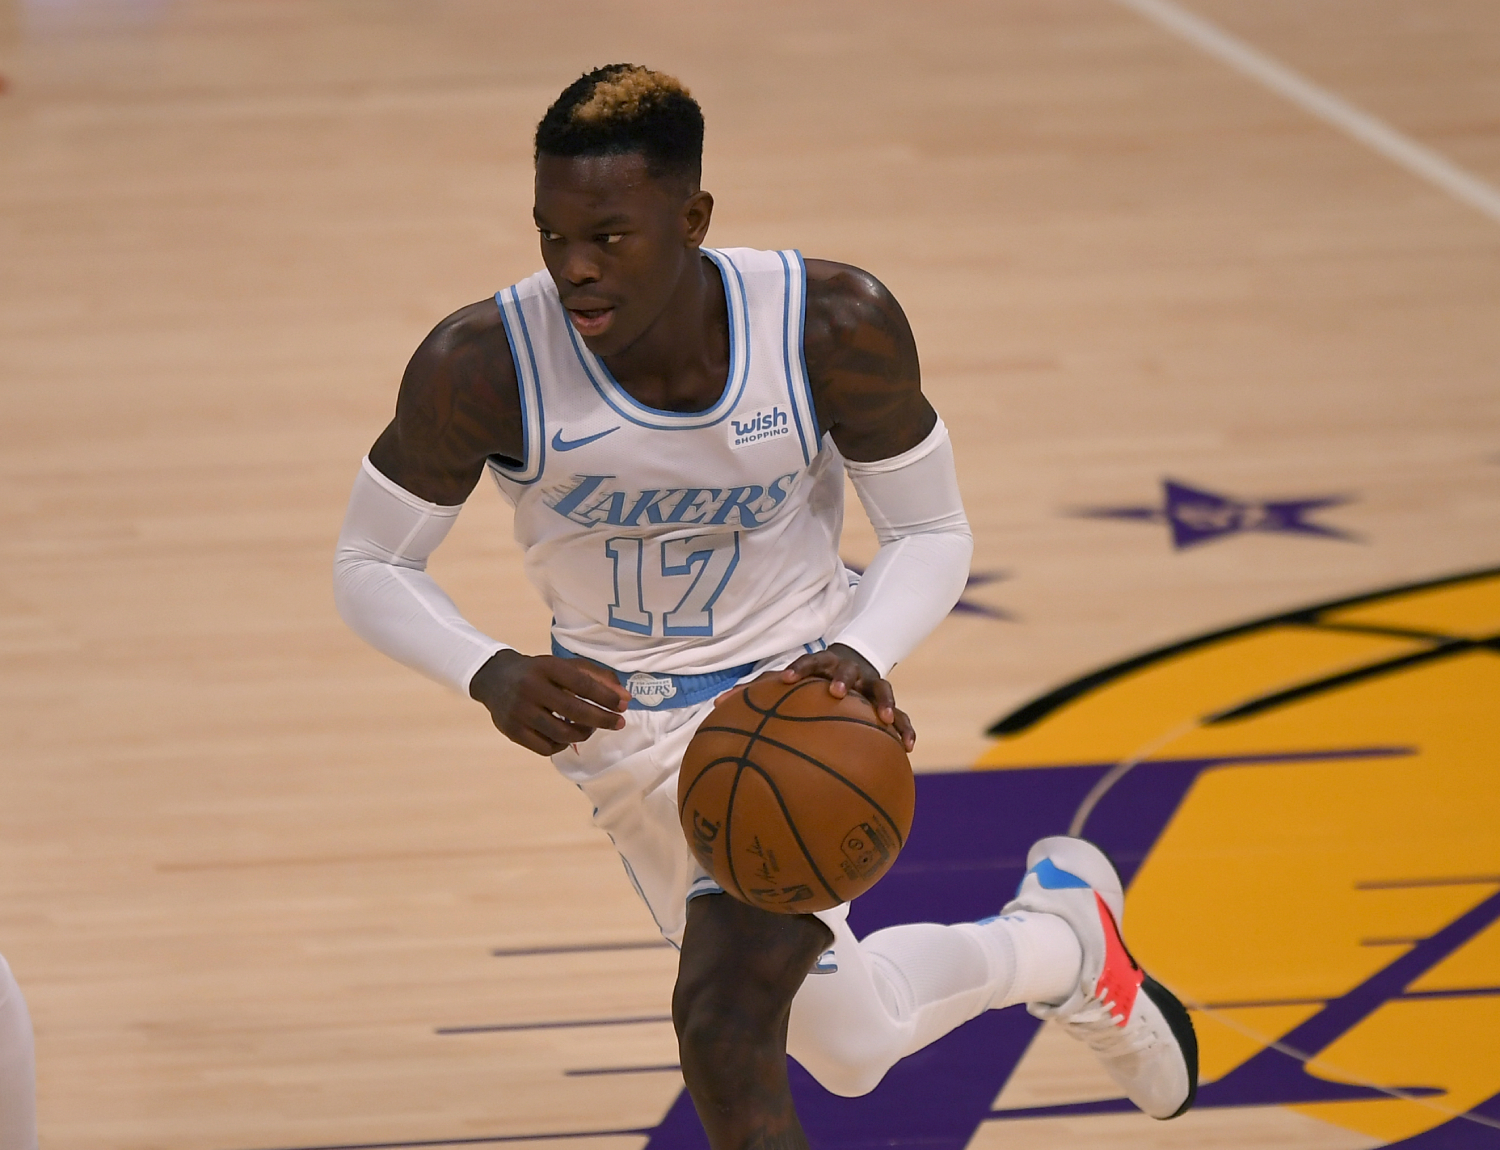 Dennis Schröder dribbles the ball during a Lakers game